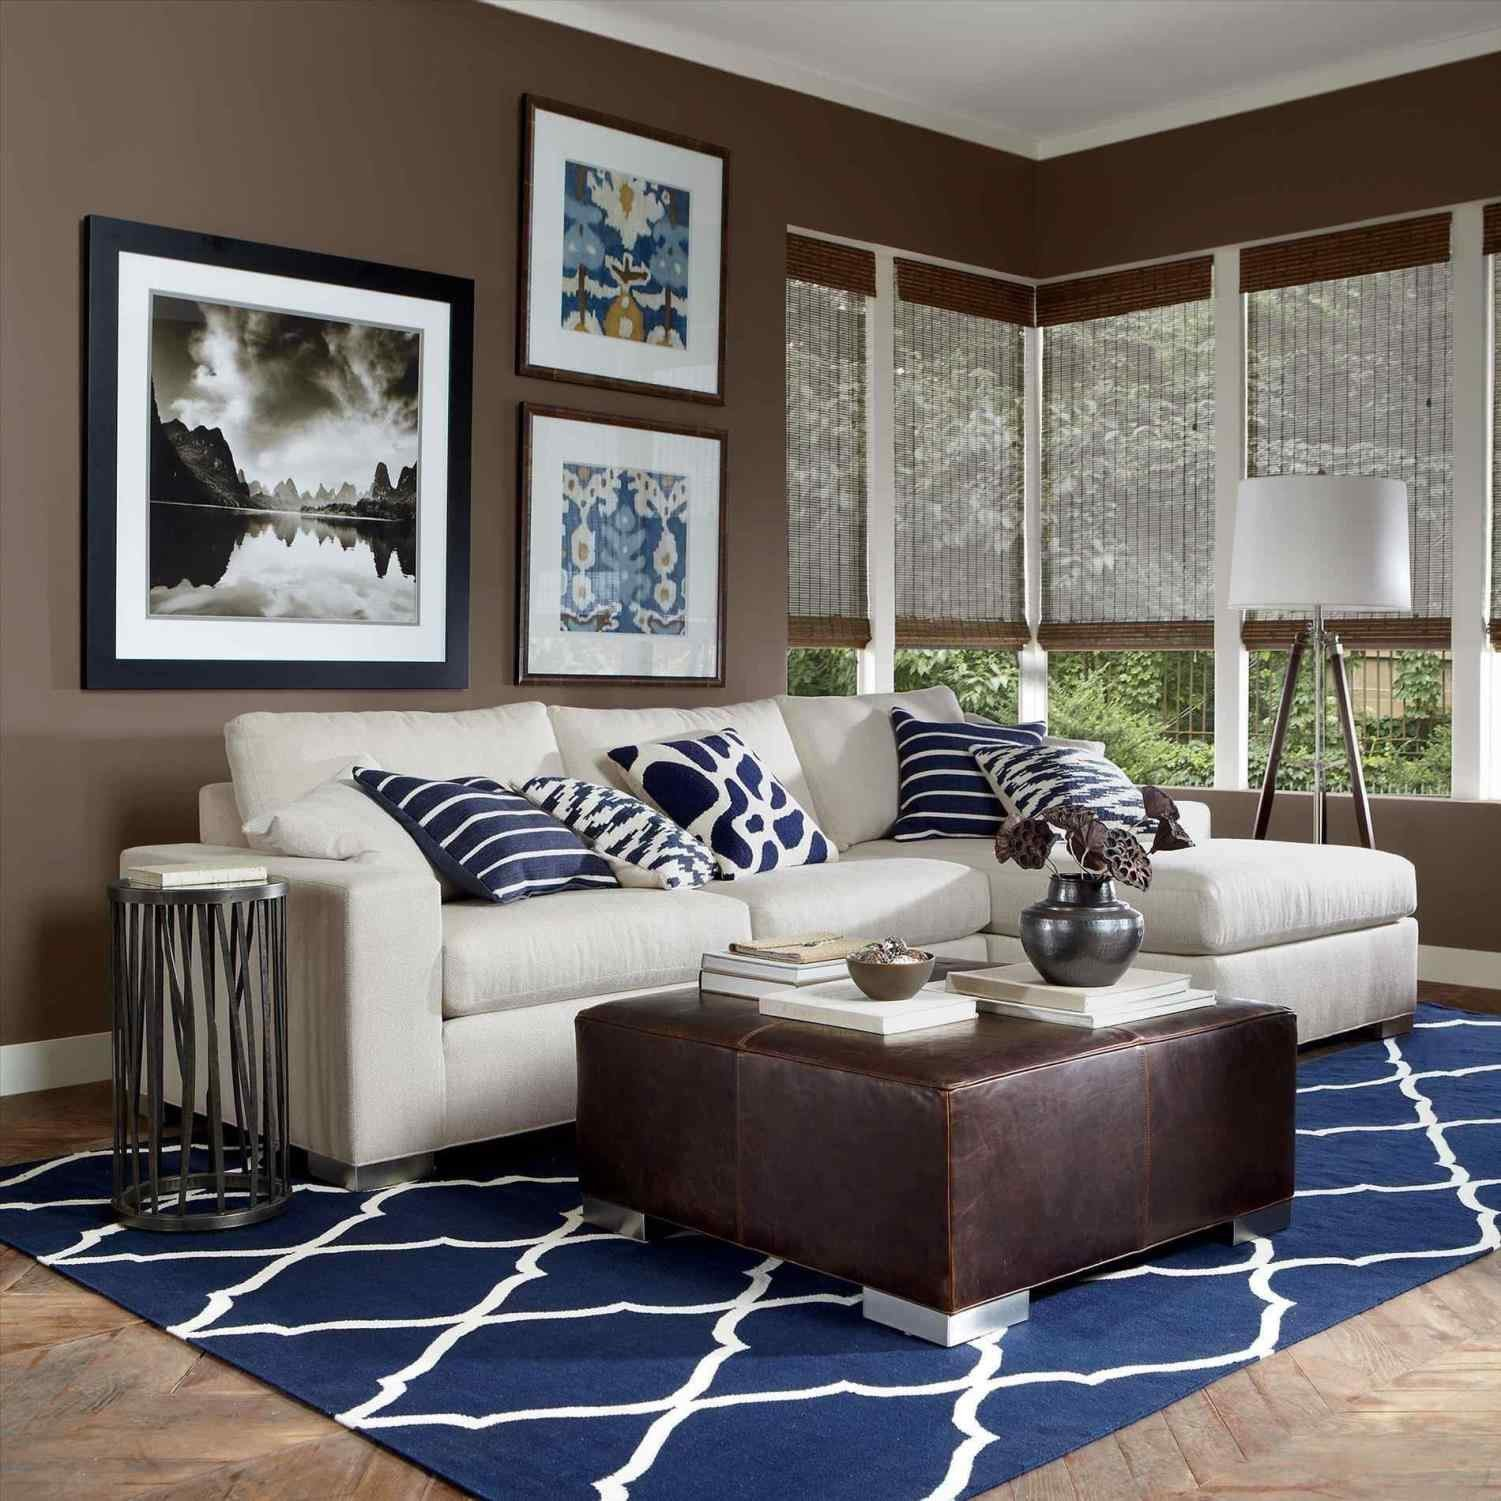 Brown Living Room Ideas 14 Incredible Navy Blue and Cream Living Room Ideas